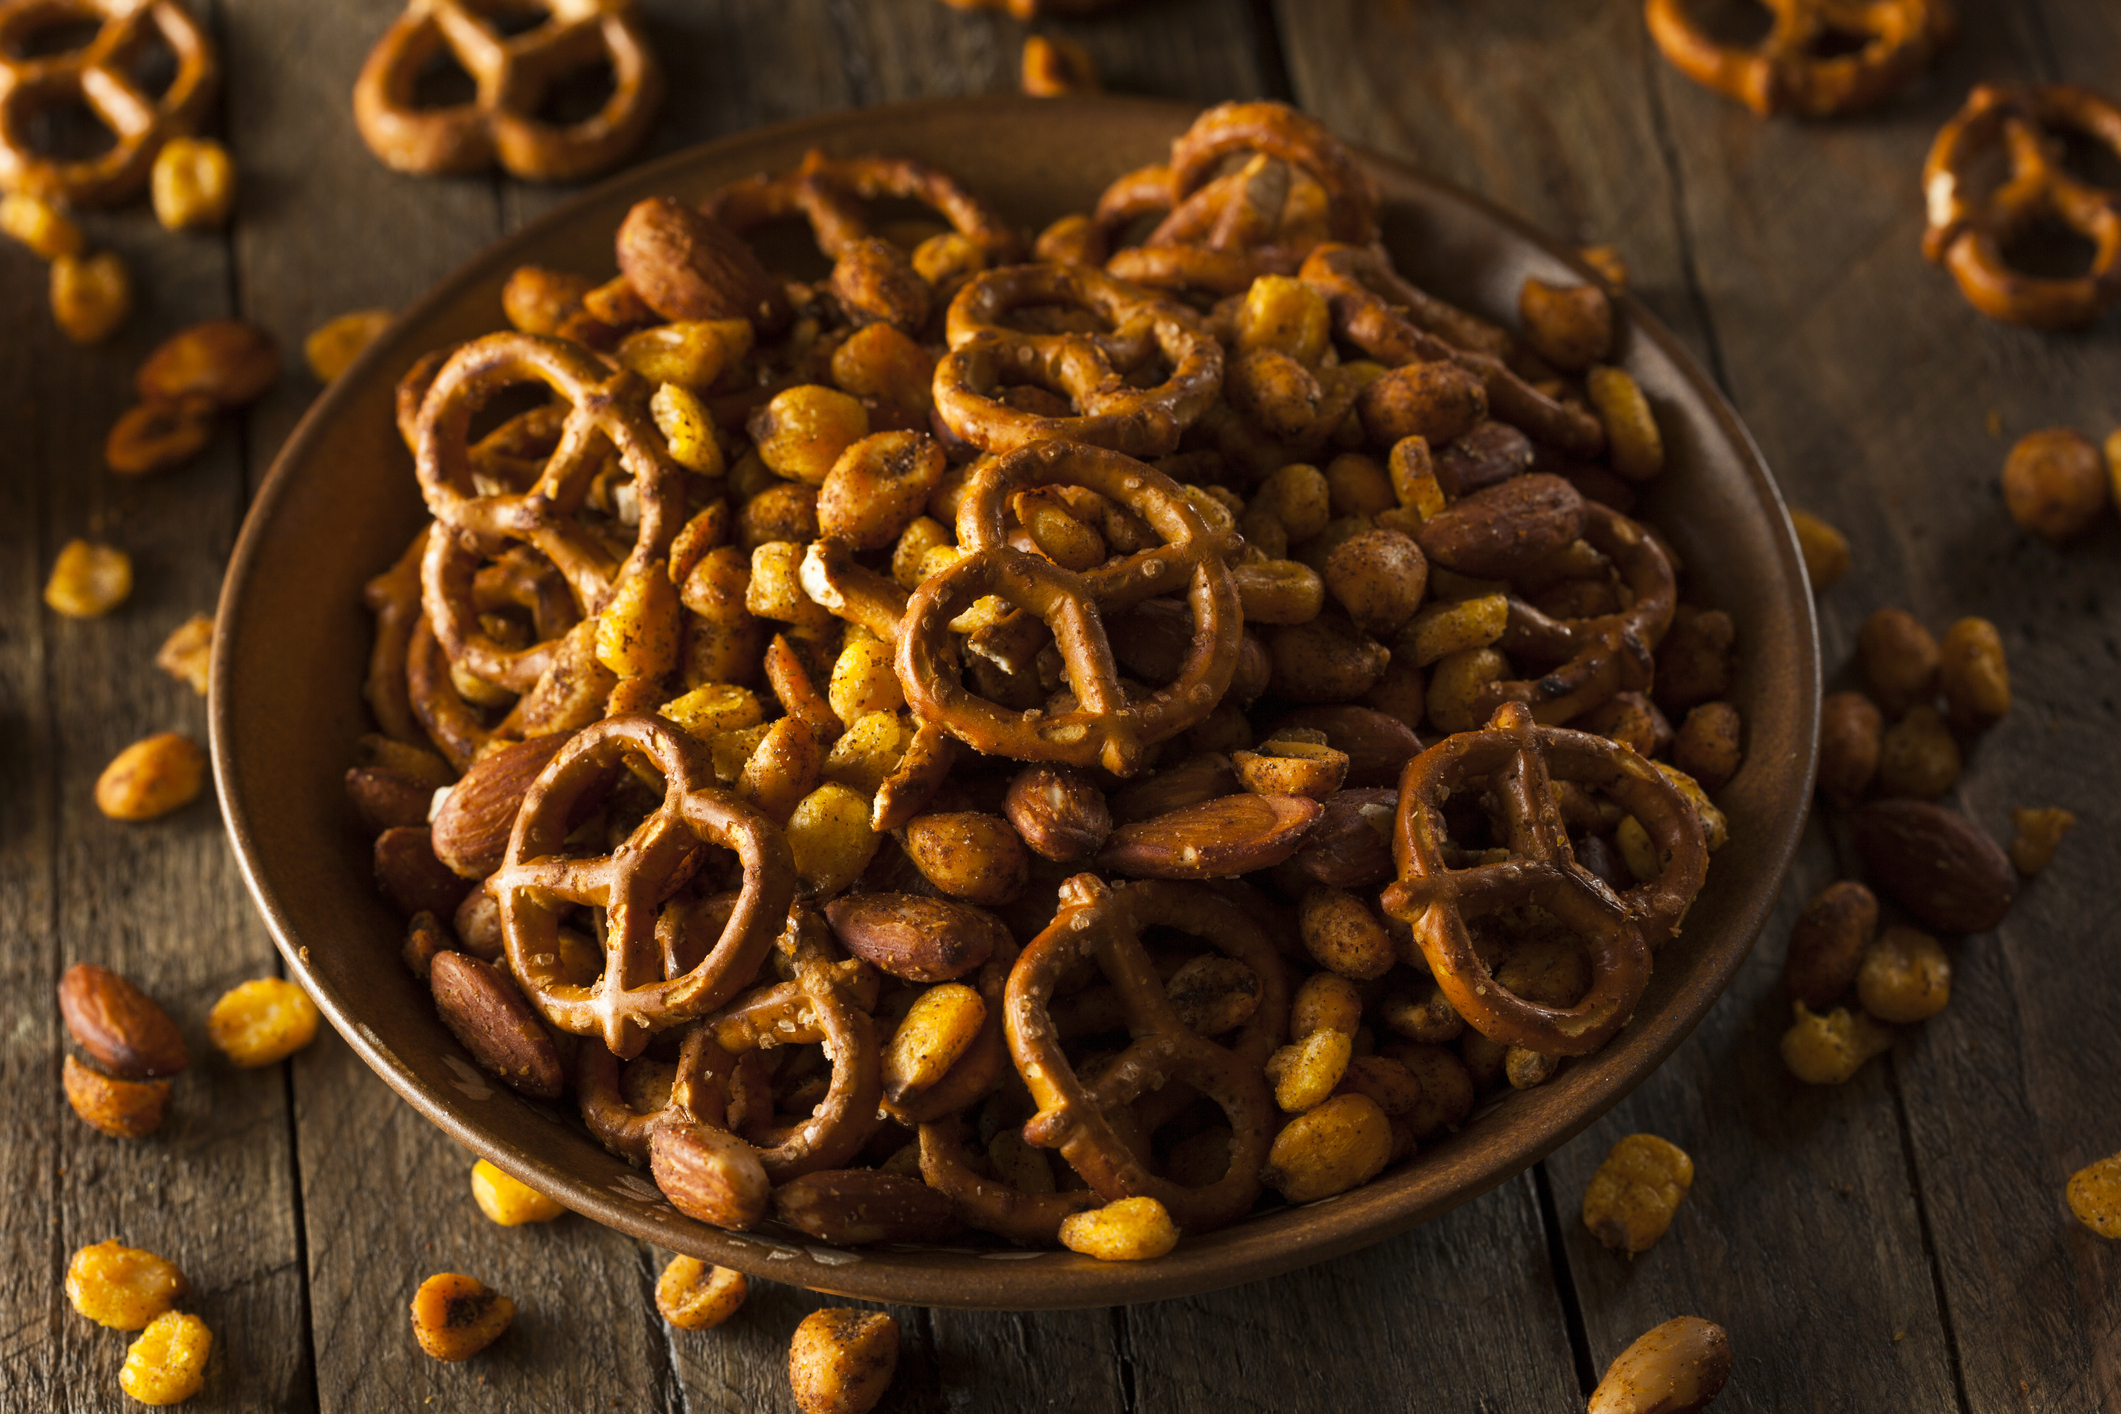 Pretzels and/or nuts are a great snack to bring along! (Image Source: iStock)